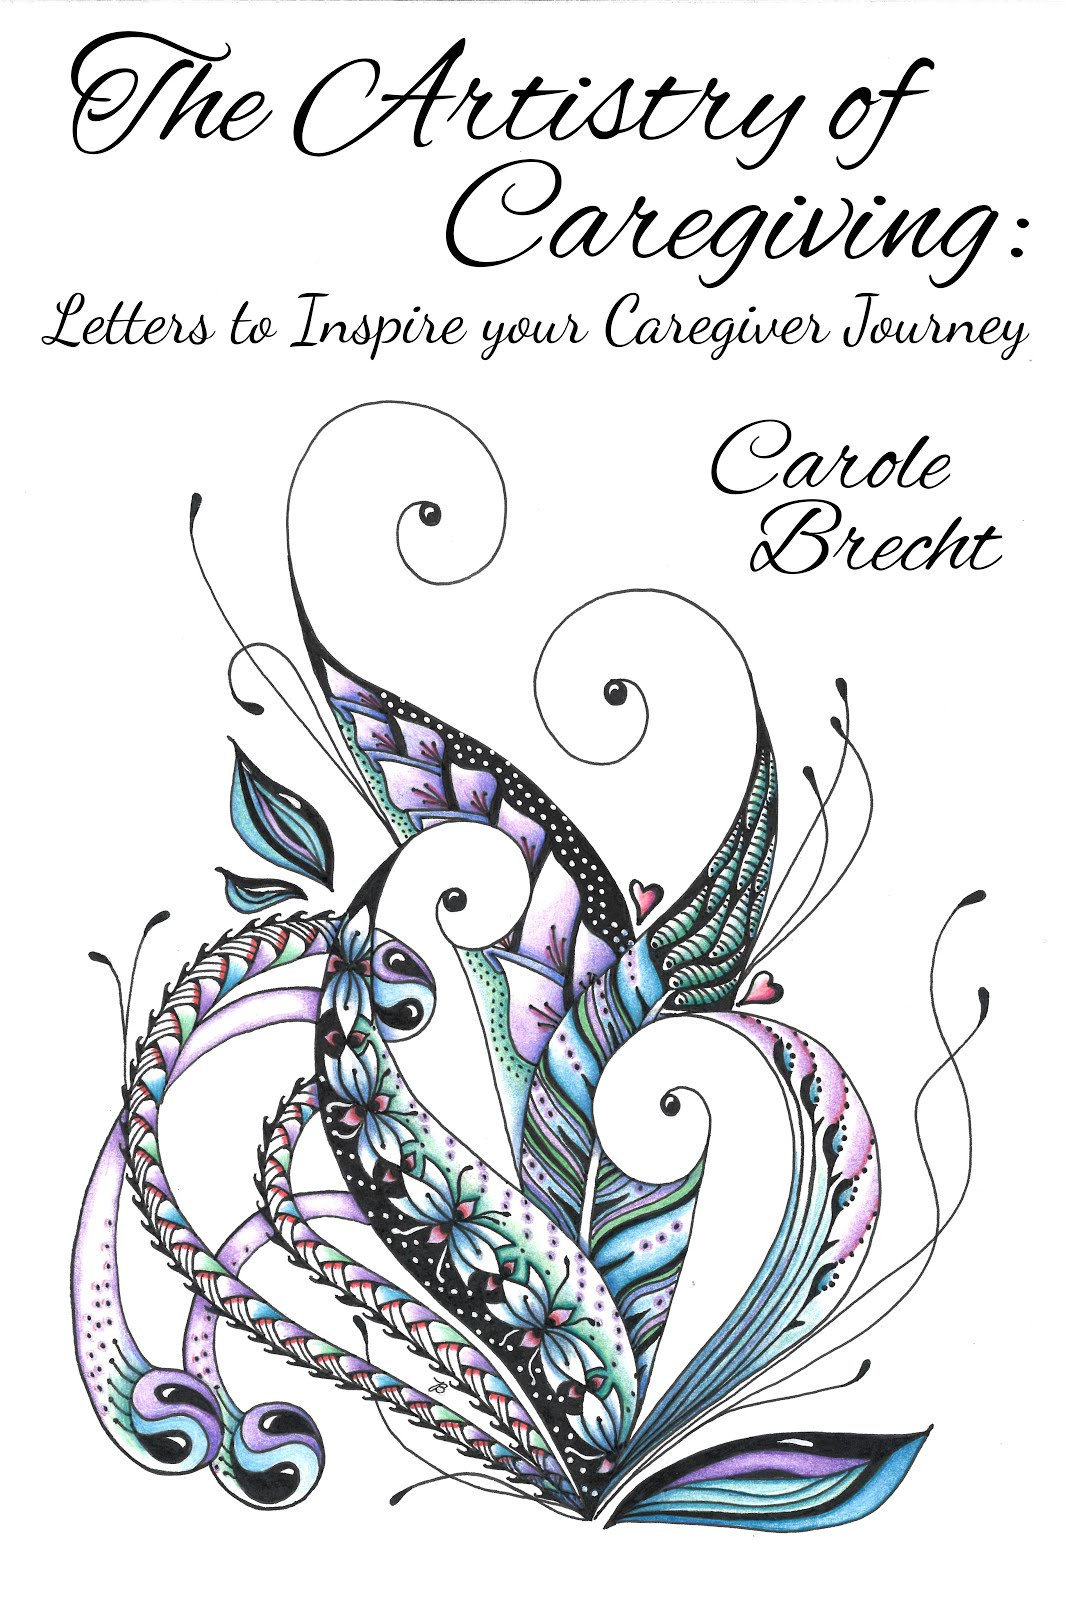 Check Out Carole's New Book!